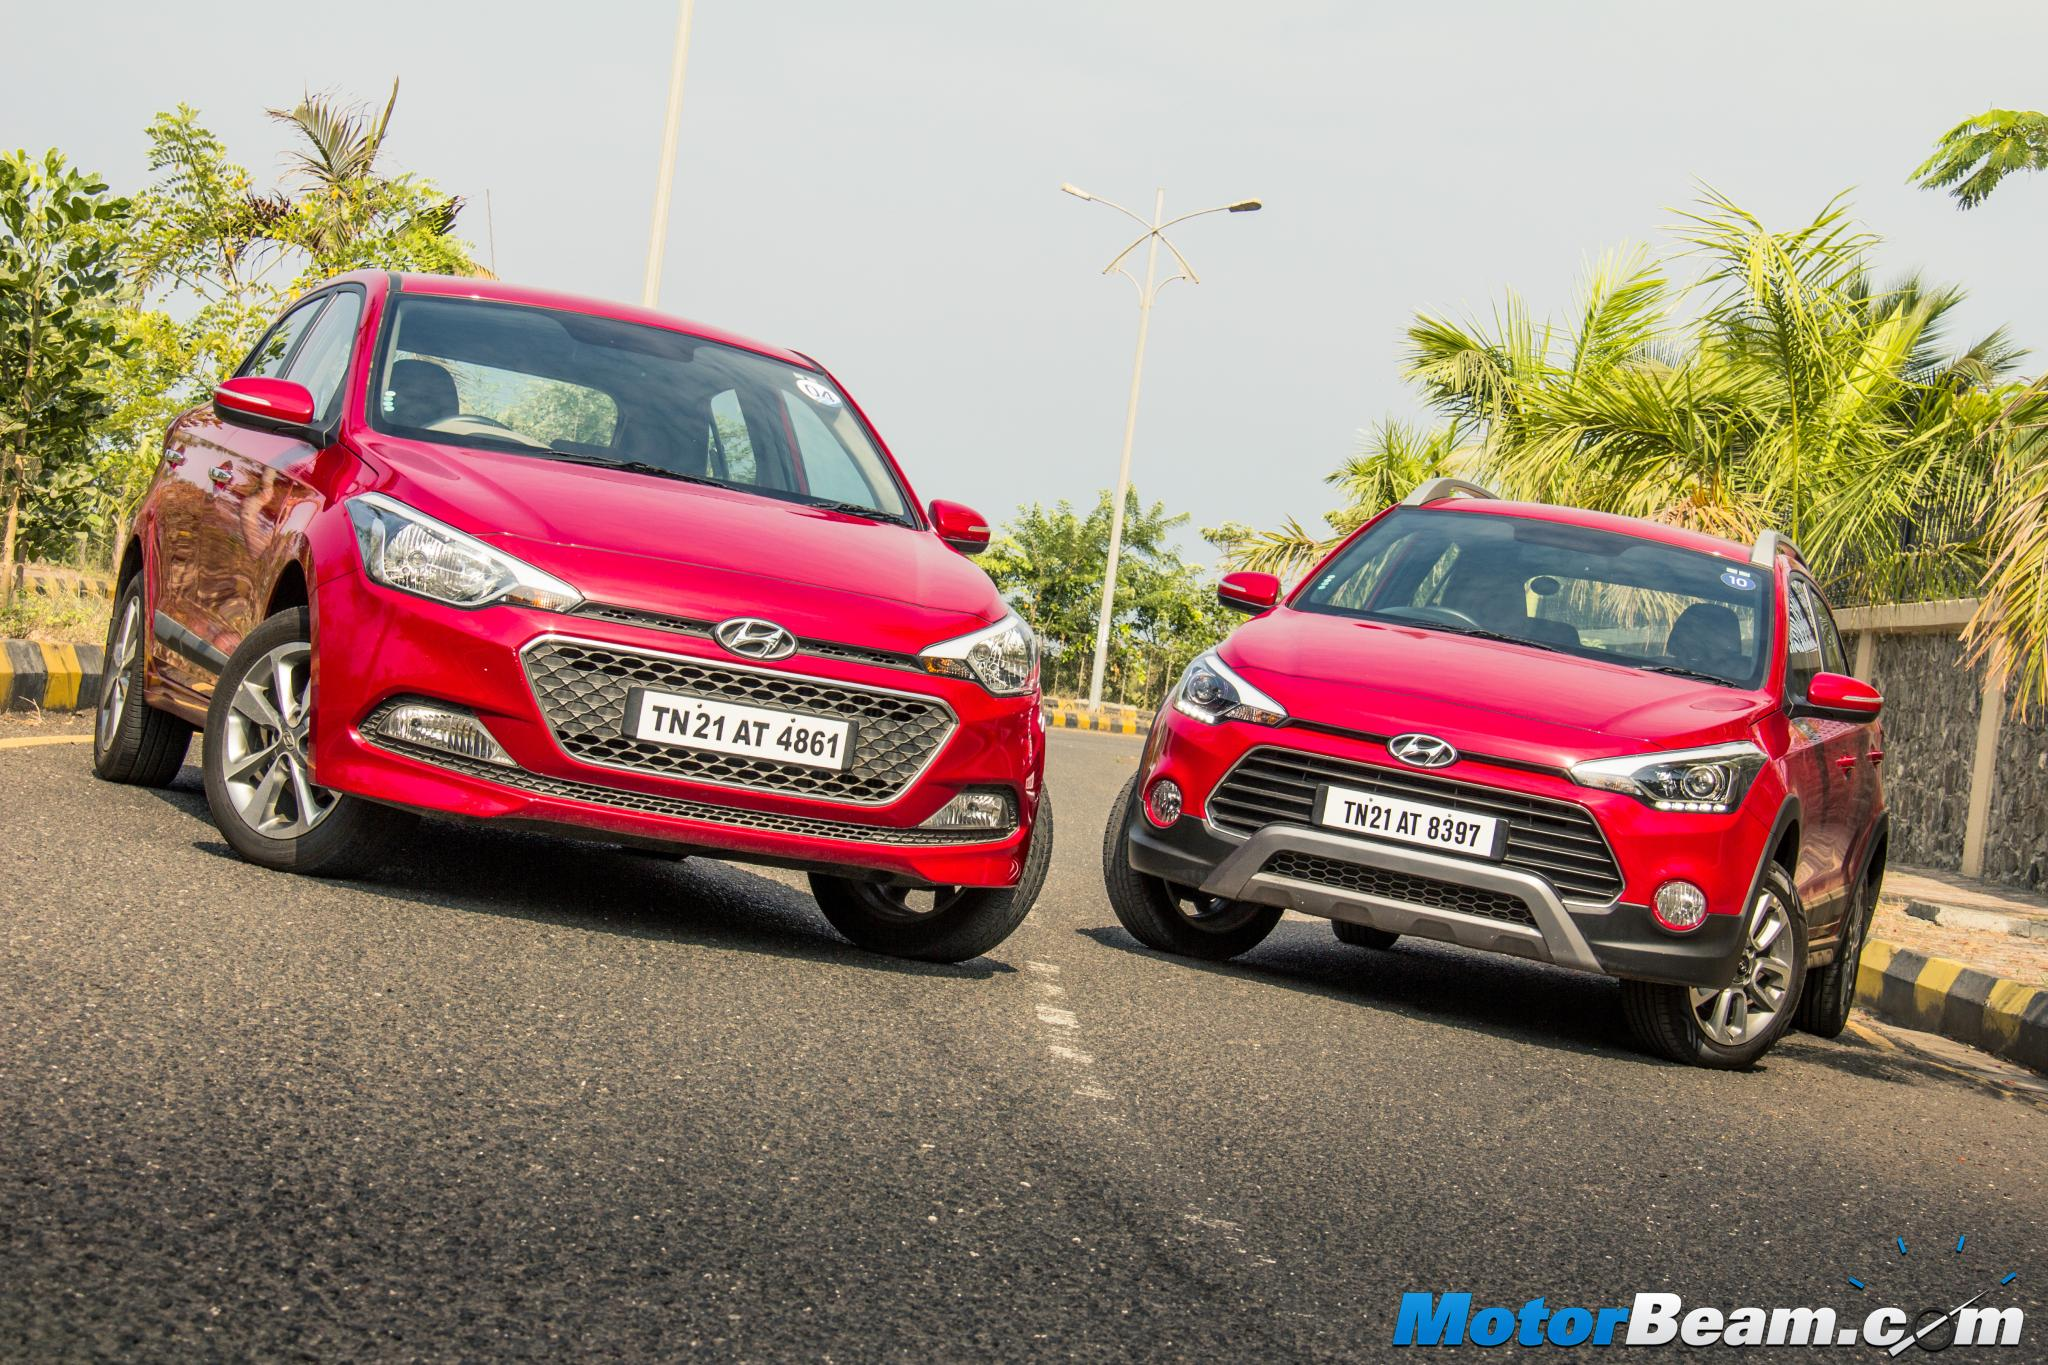 Hyundai Elite i20 vs Hyundai i20 Active